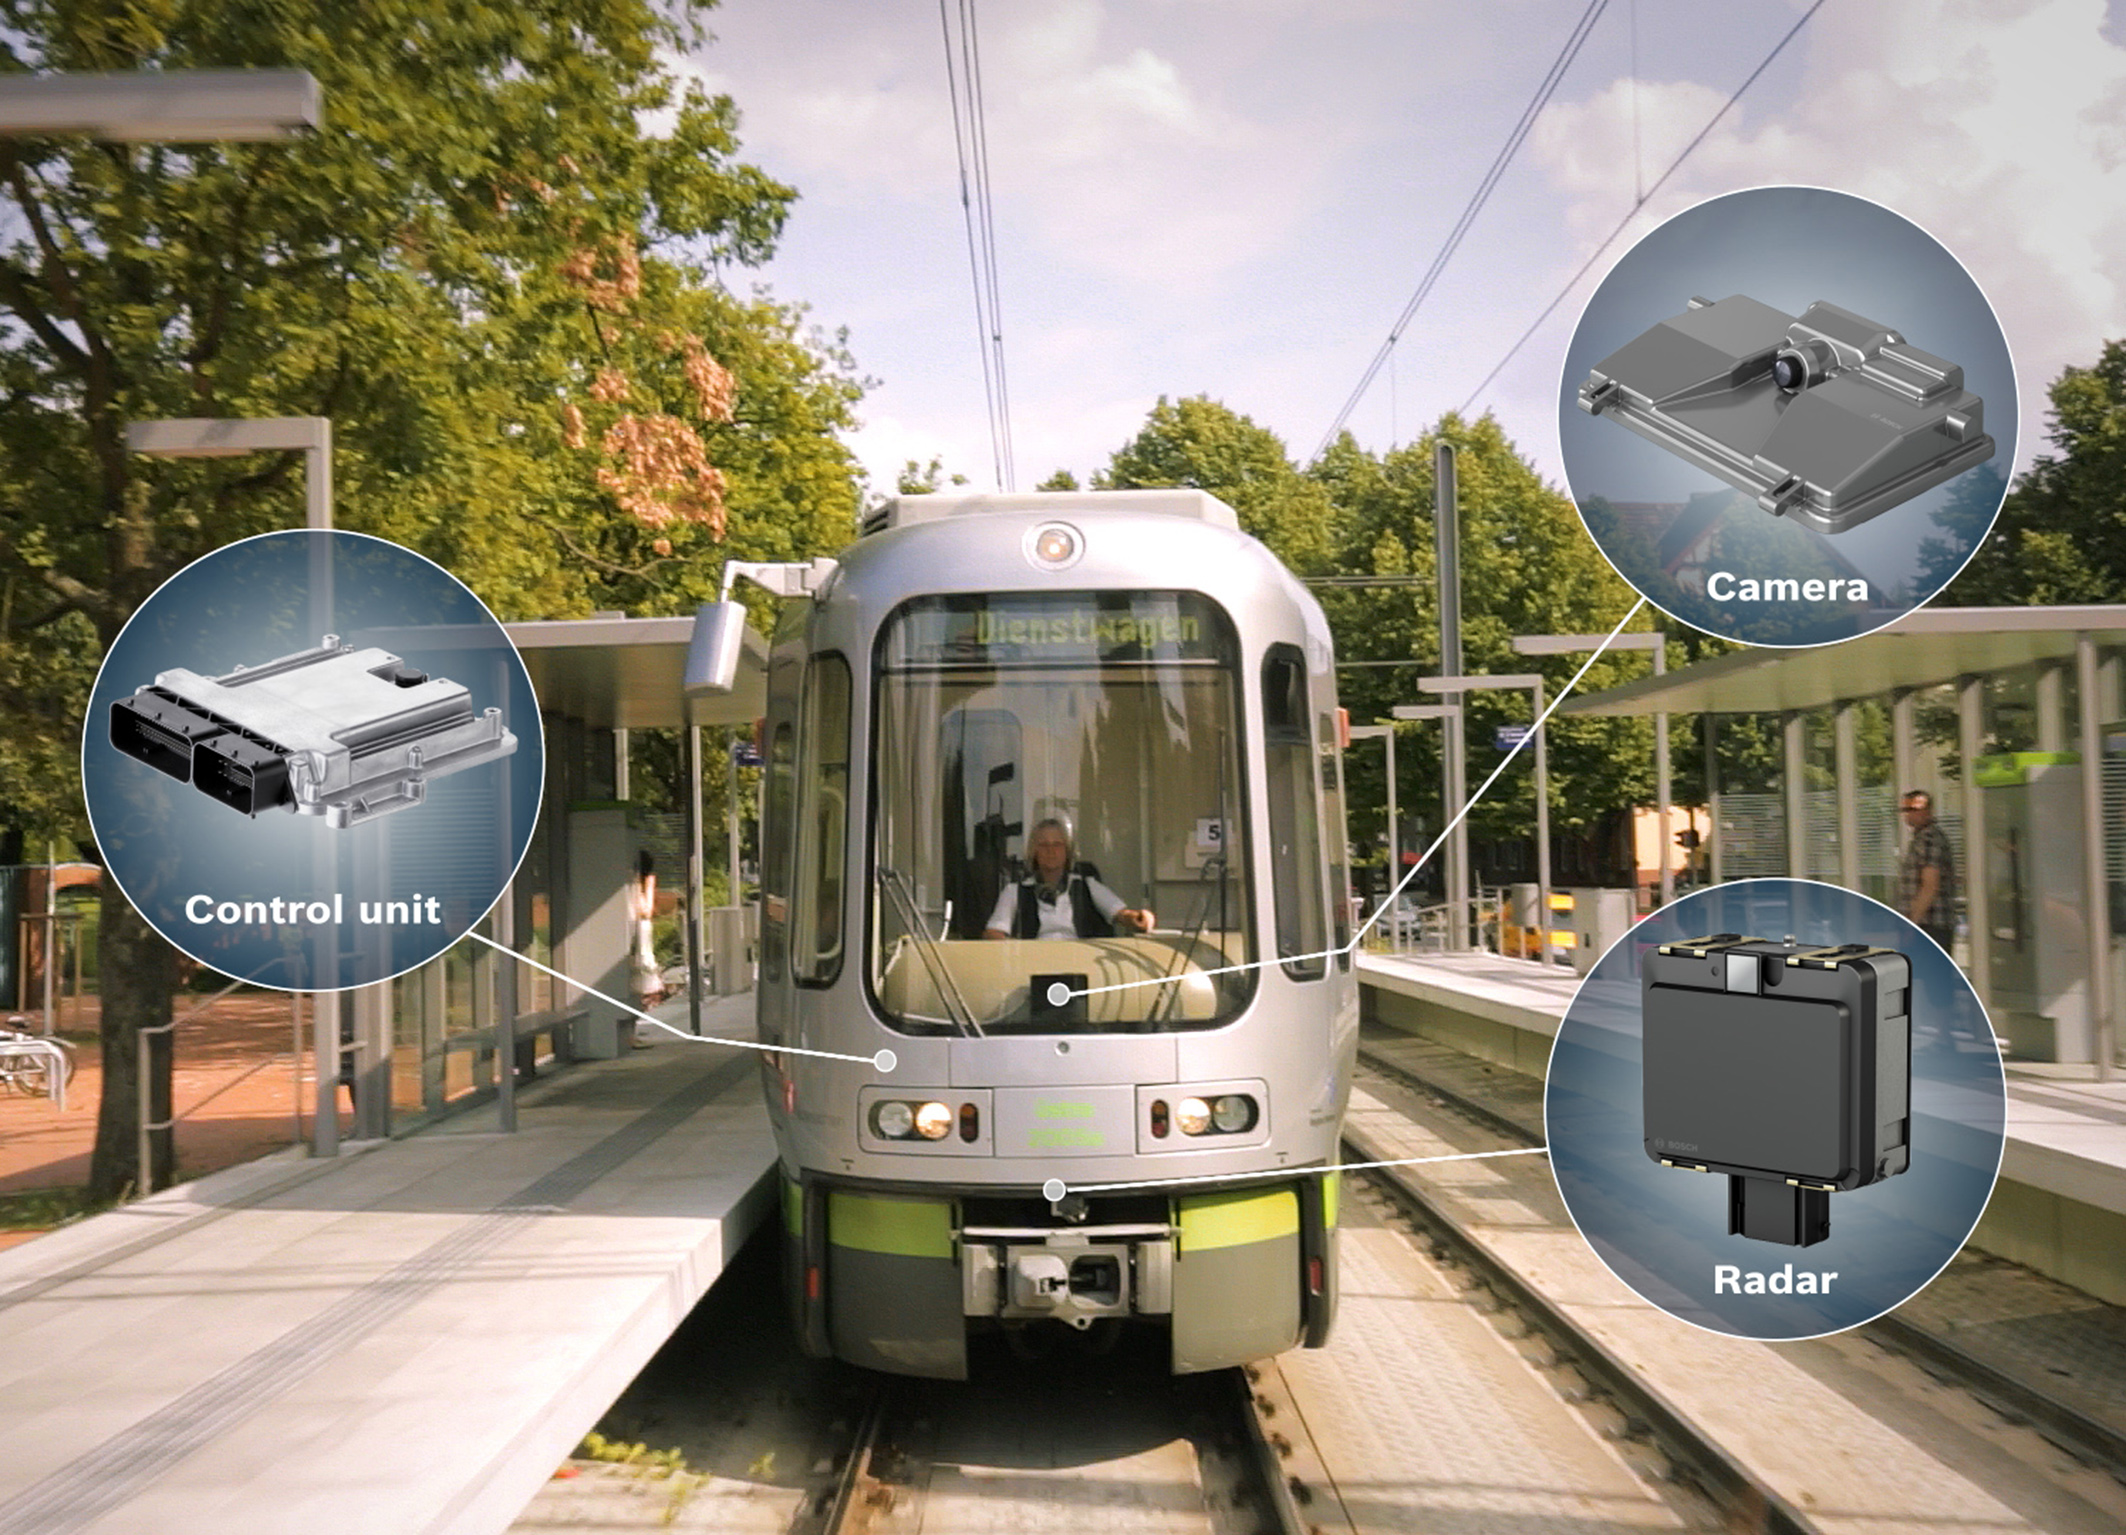 Bosch technology is increasing safety in cities